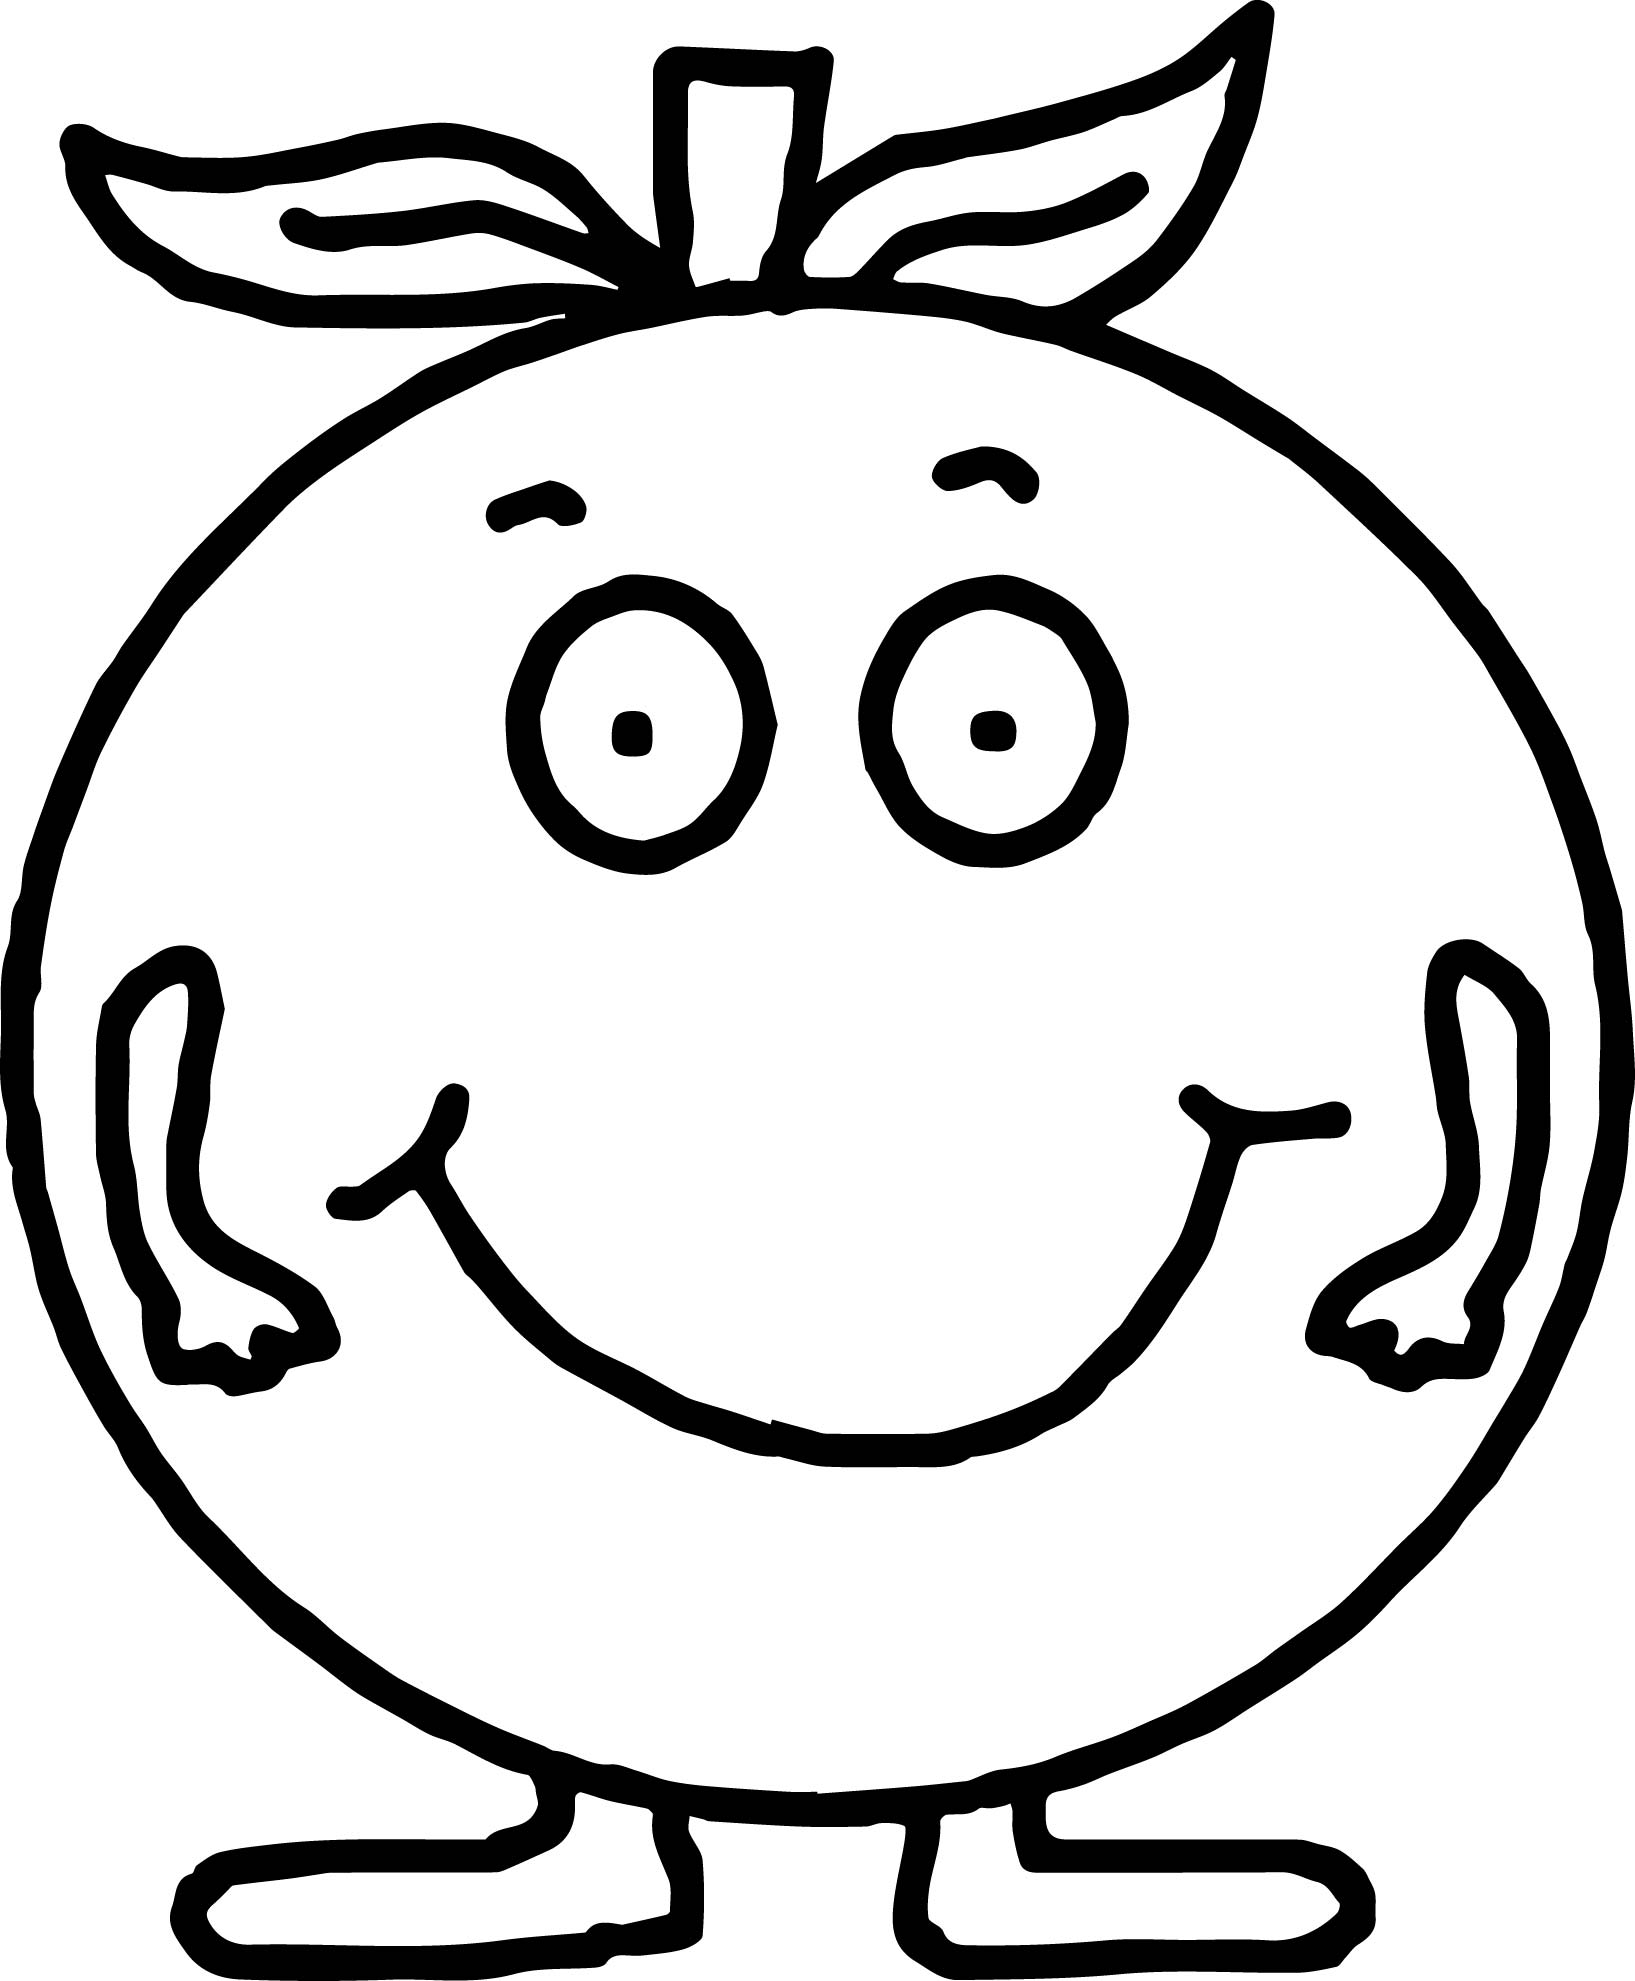 Smily Apple Coloring Page